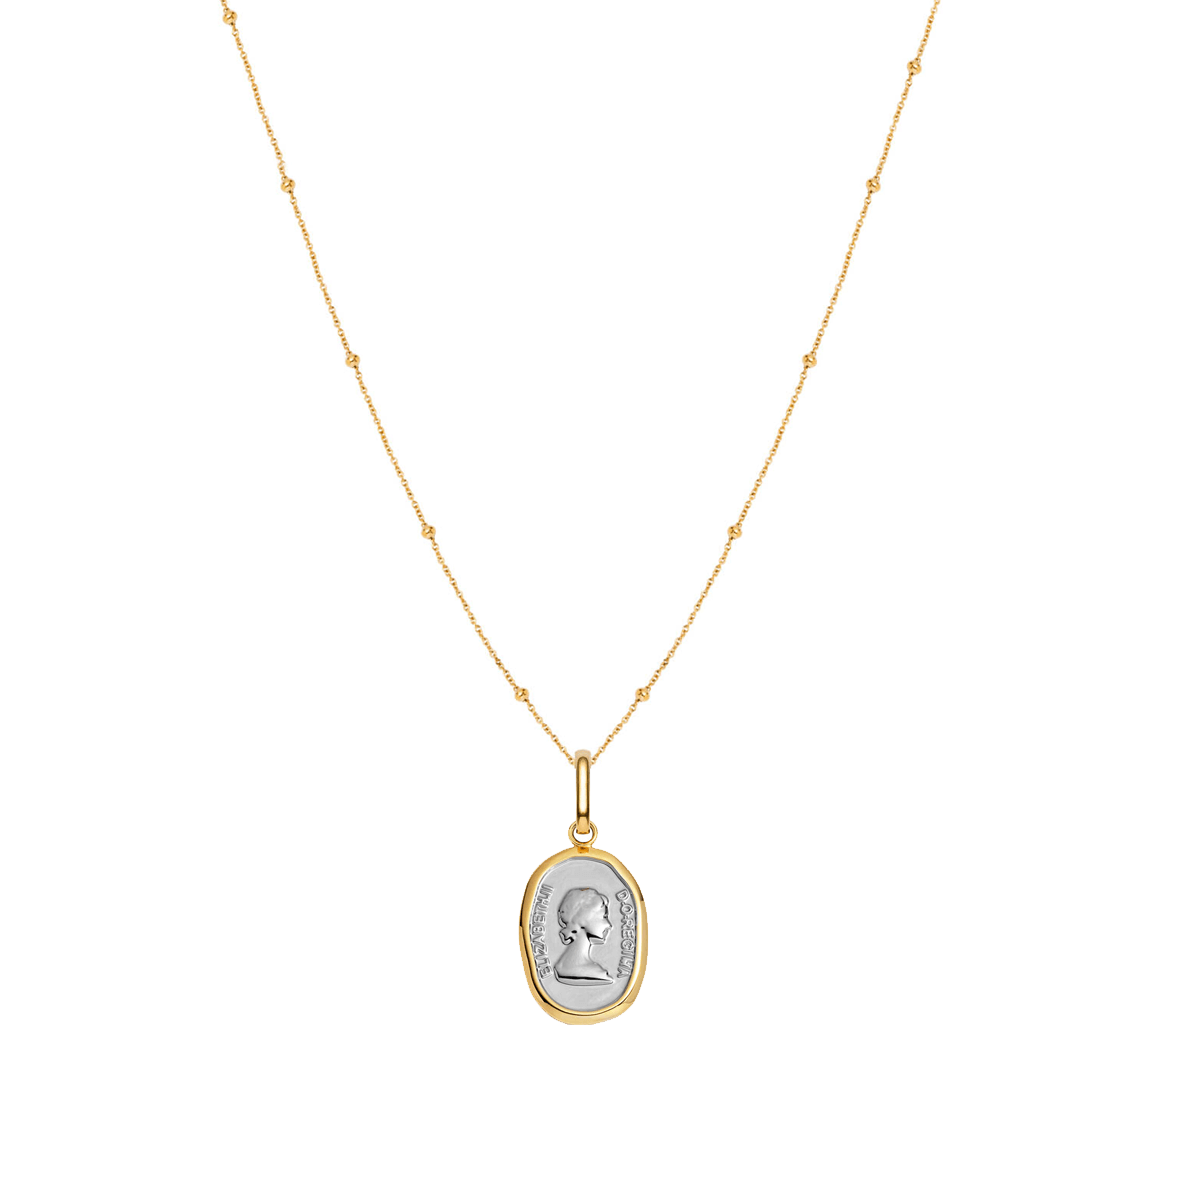 Queen Sphere Chain Necklace 16 in (Gold)